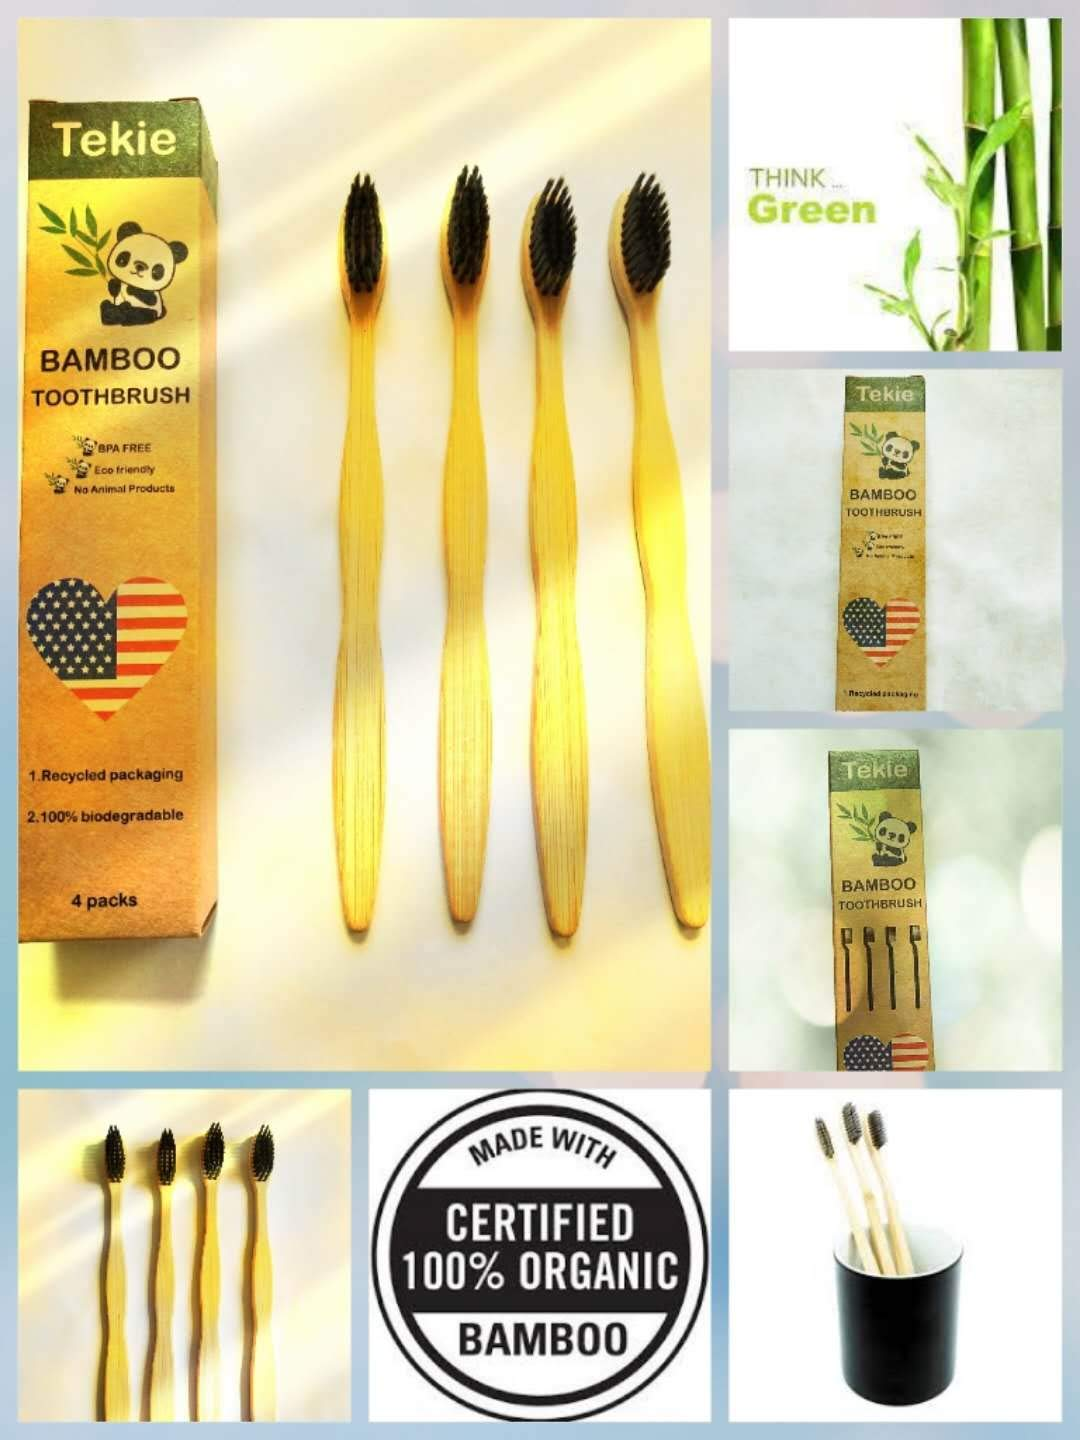 tekie 4 Environmental Bamboo Toothbrushes 100% Natural Organic Biodegradable and Vegan cost-effective Soft Free Nylon Bristles Fibre Wooden Handle